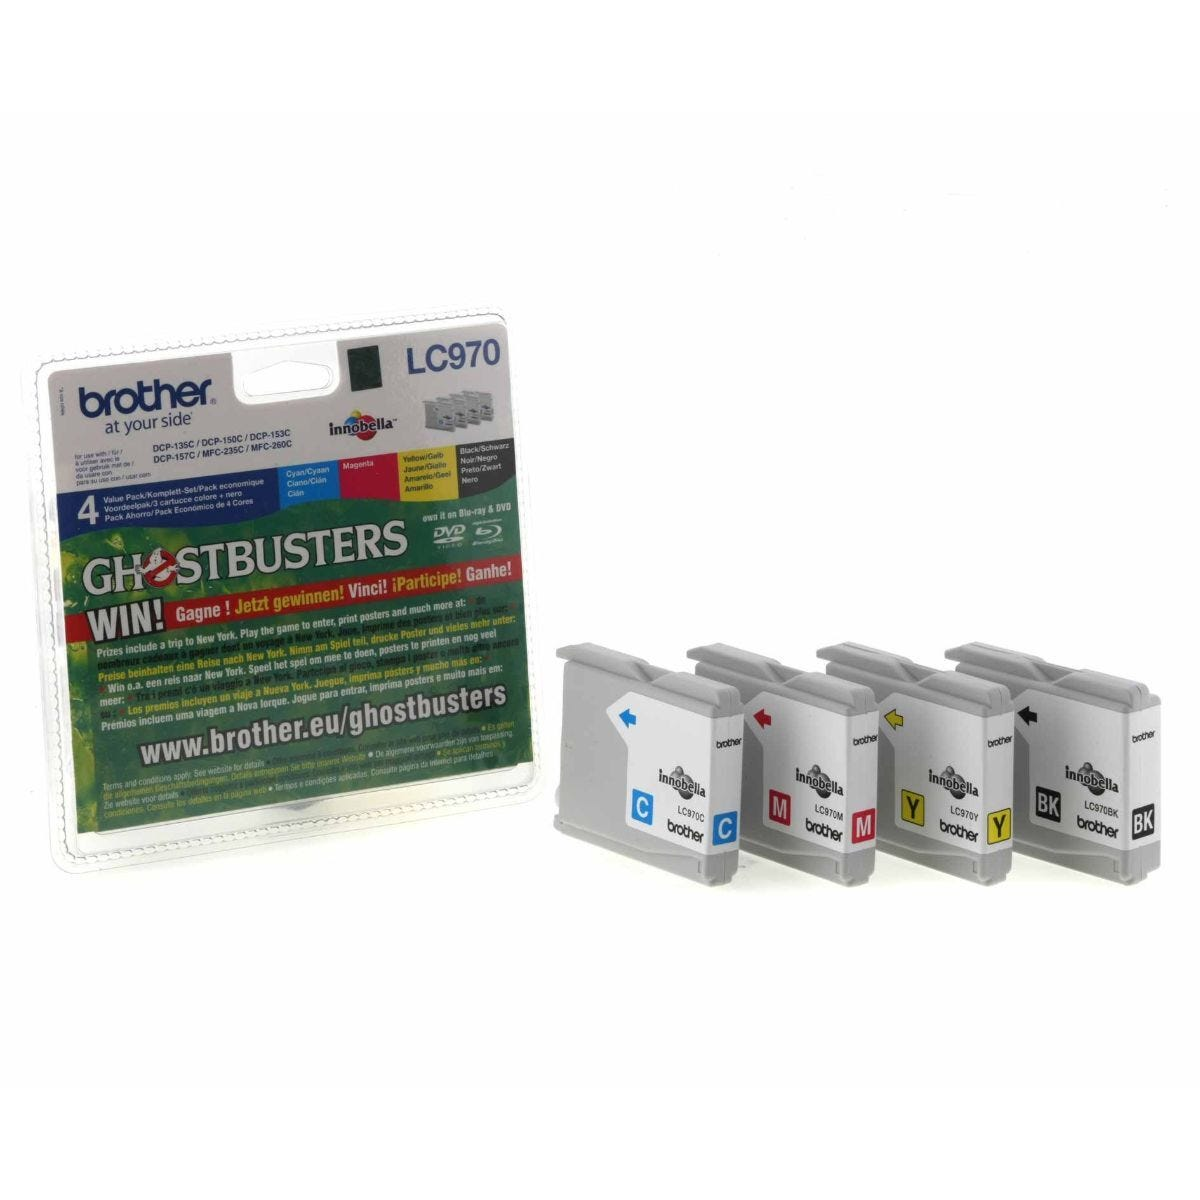 Brother LC970 Ink Cartridge Pack of 4